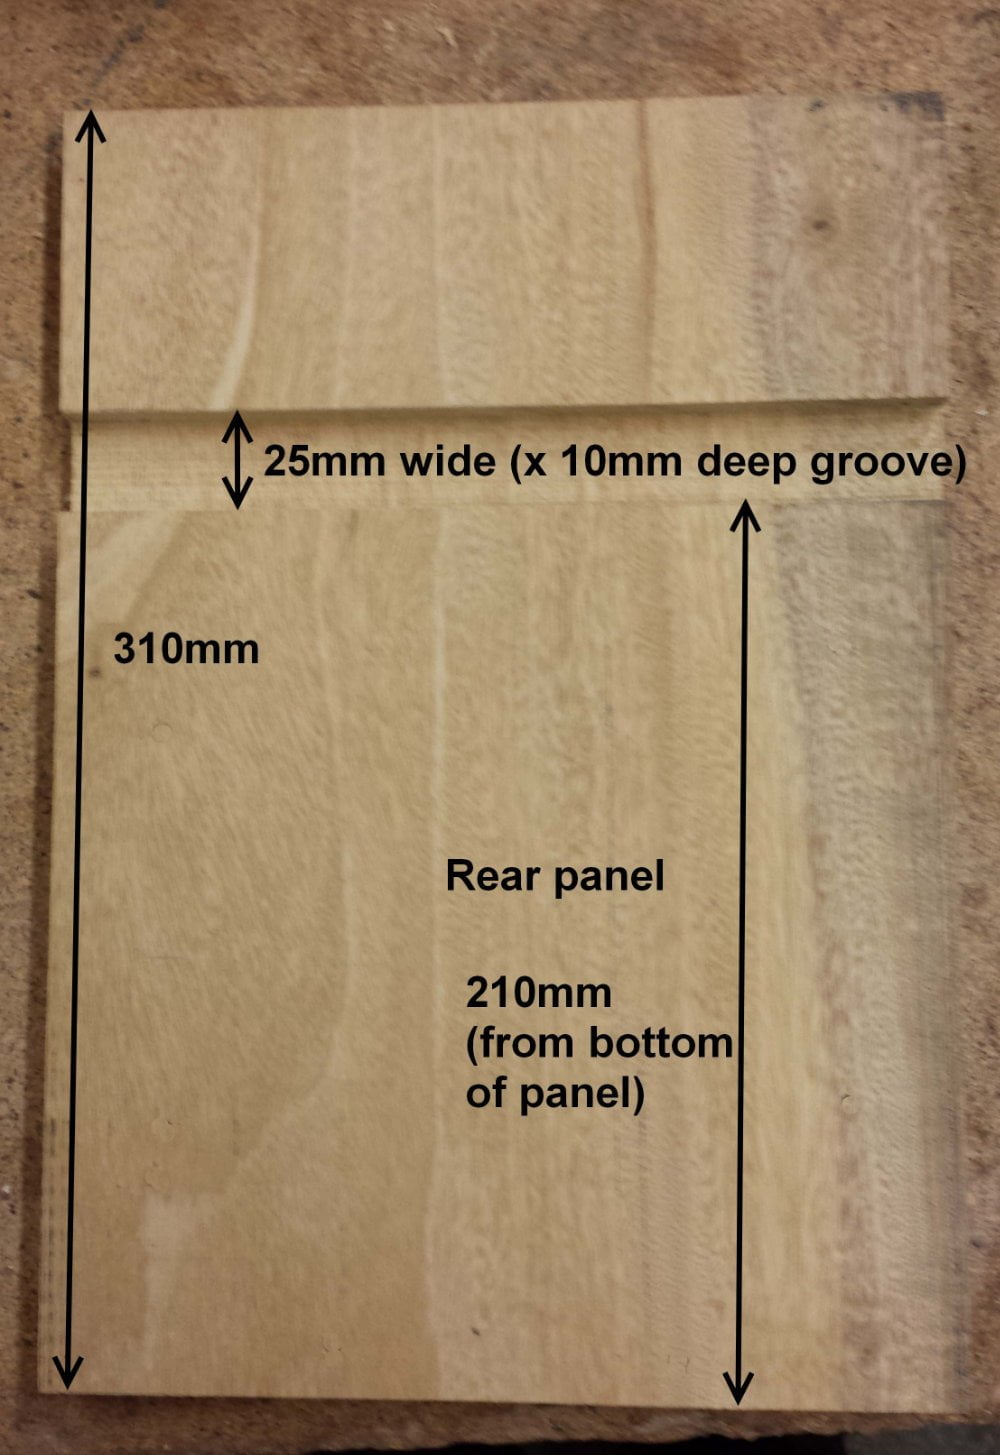 Nesting bird box groove rear panel